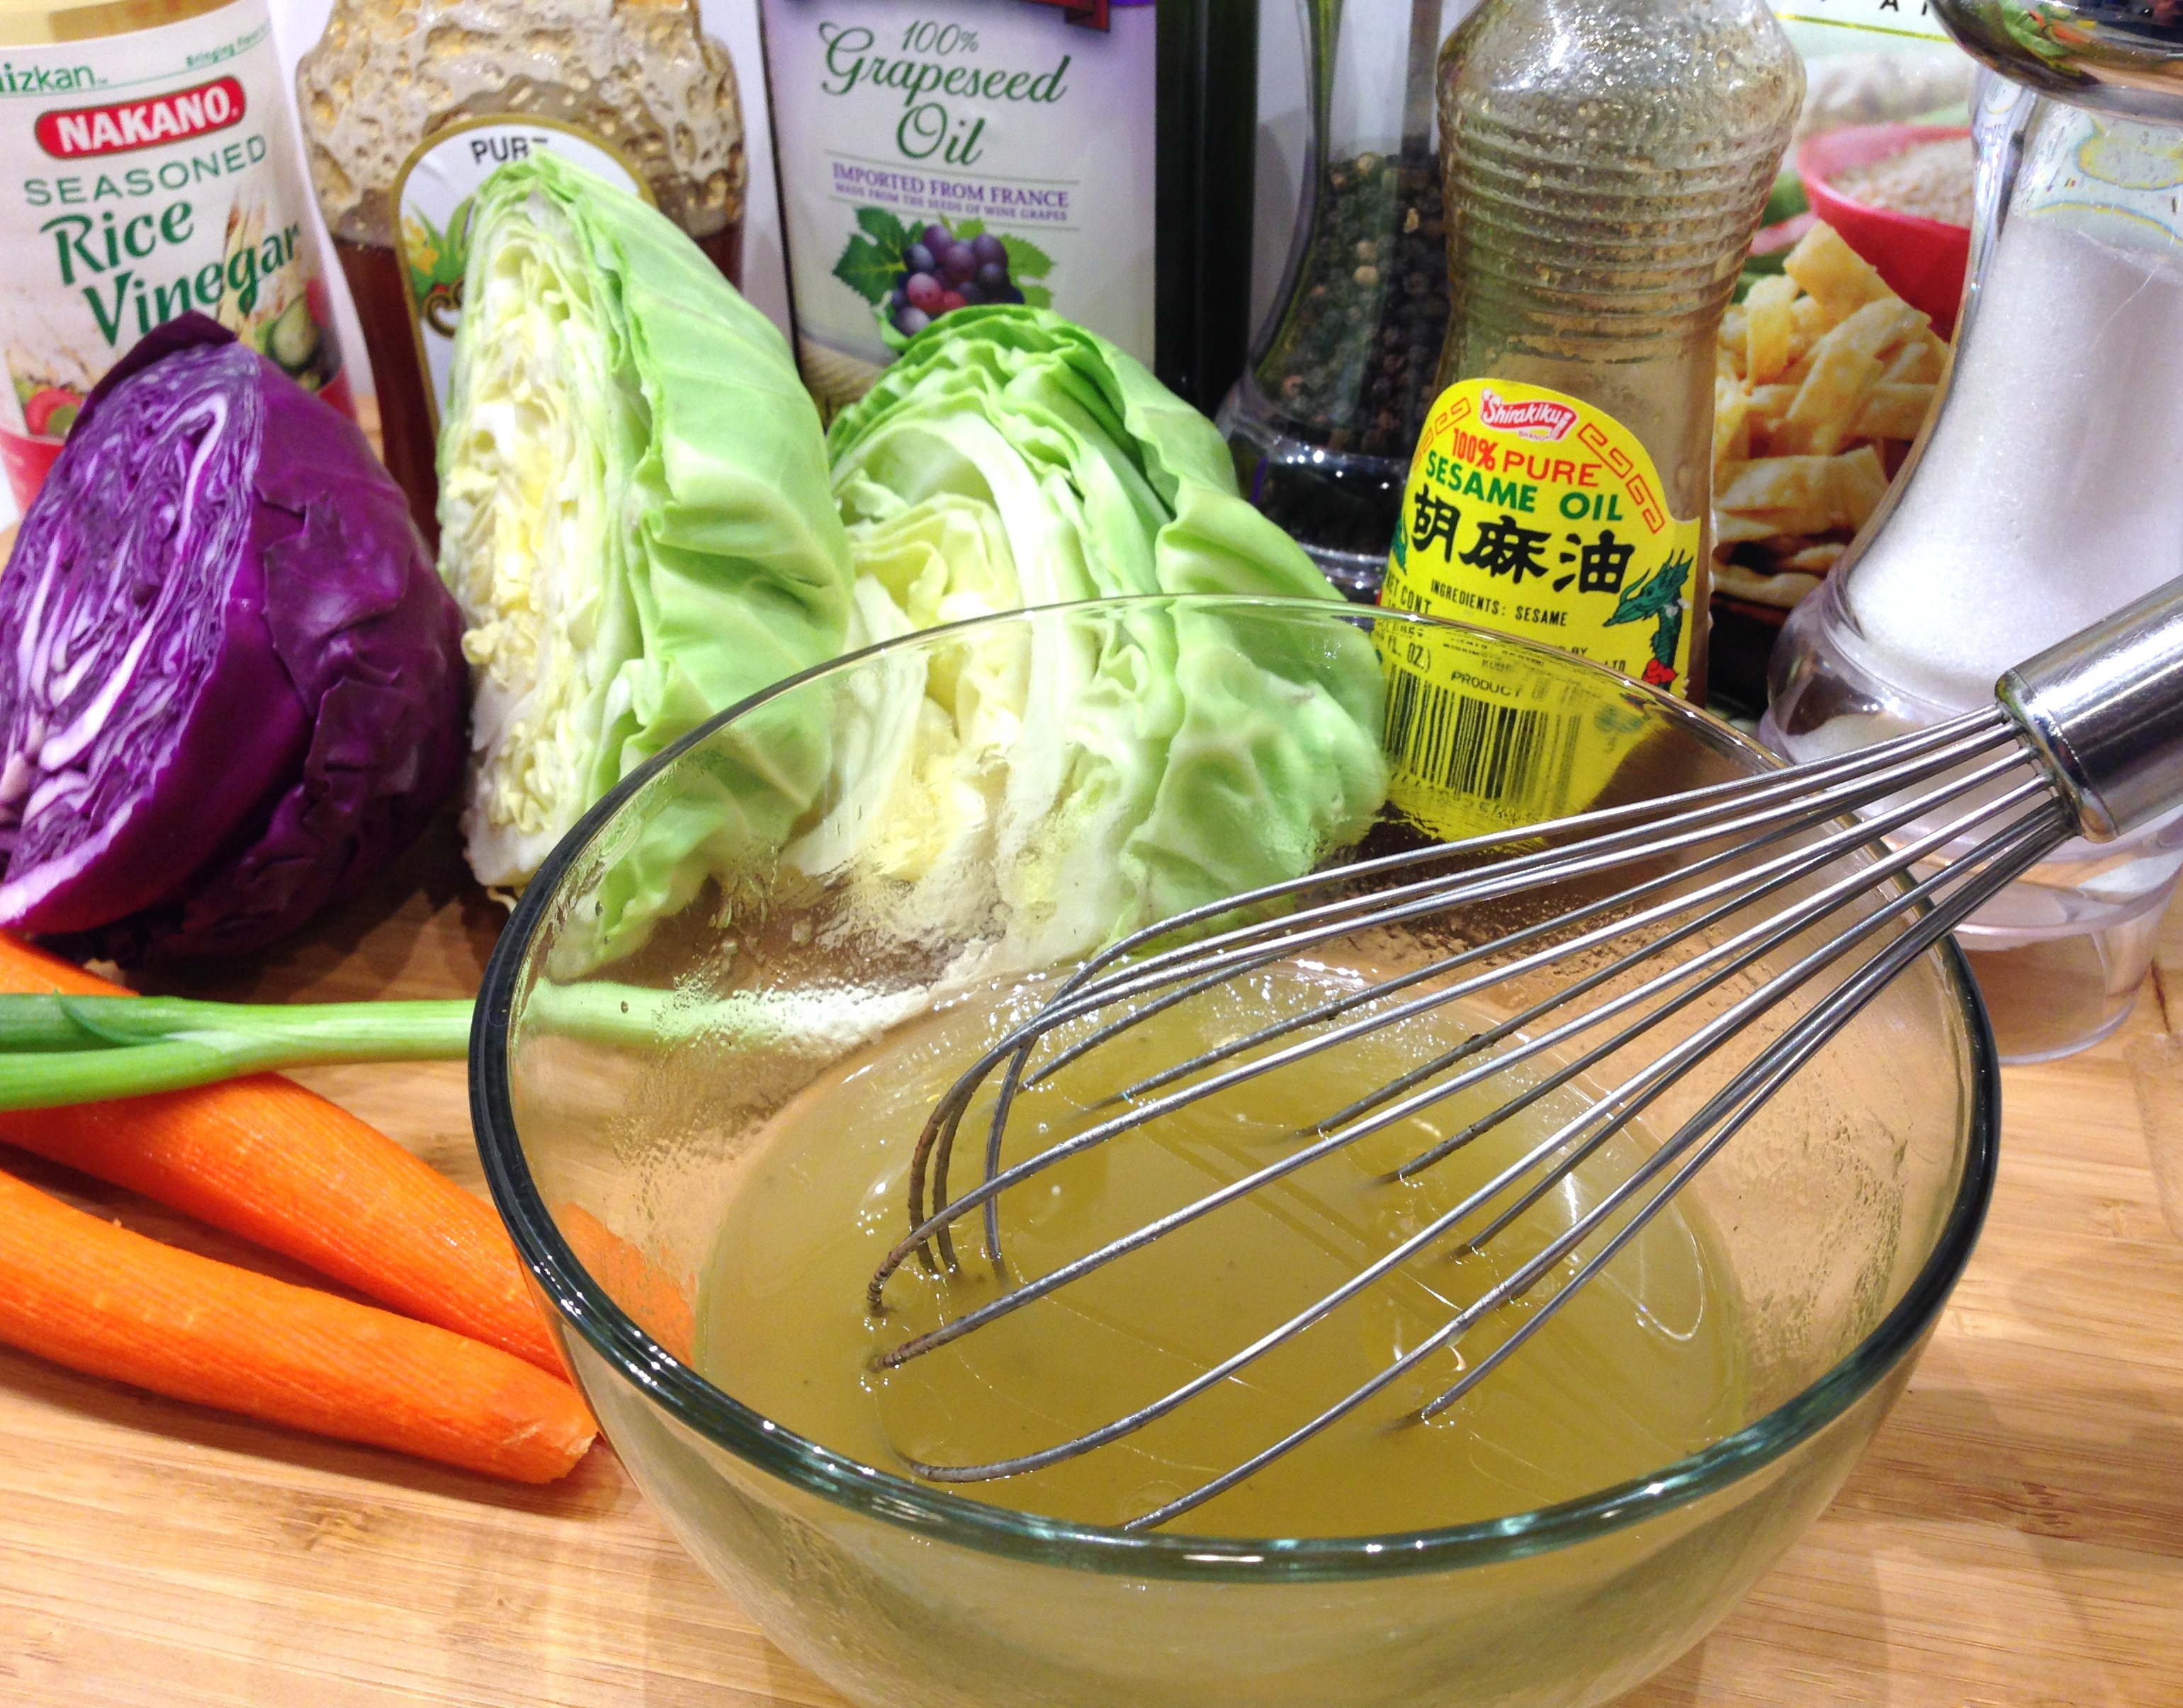 Rice Vinaigrette